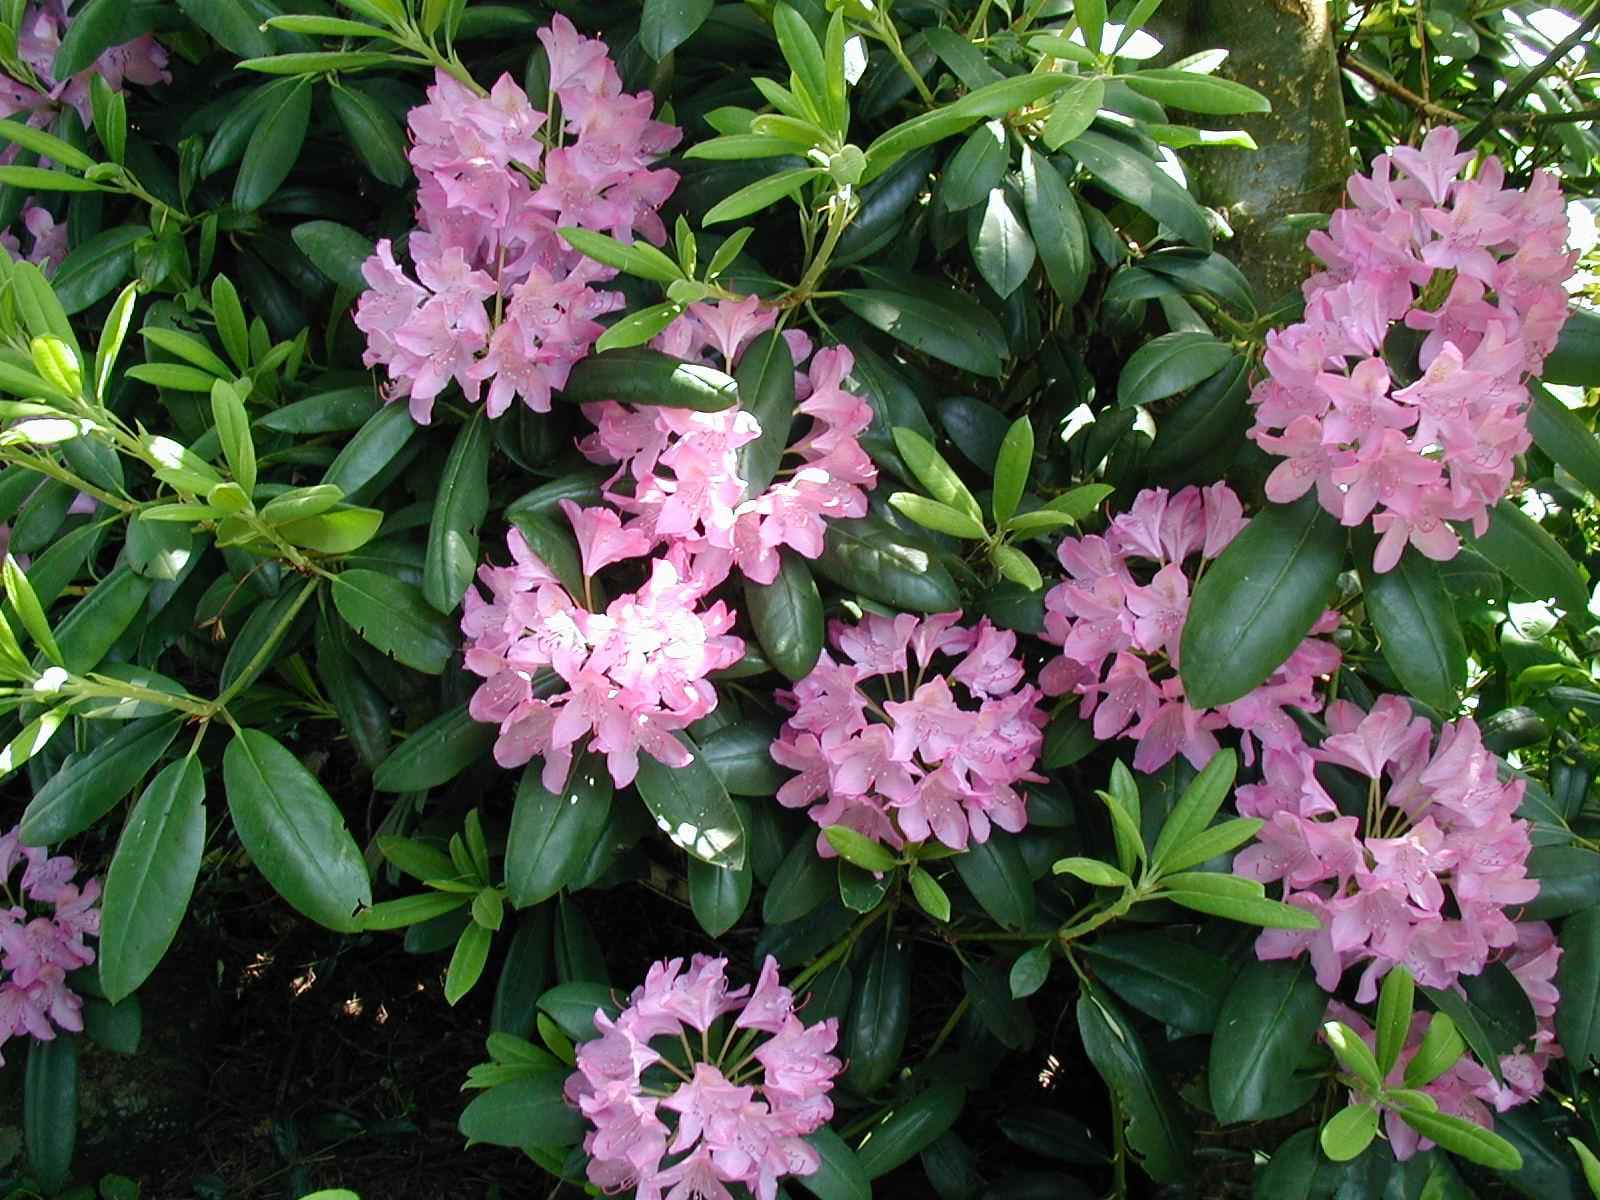 Winter Gardening Color With Evergreen Rhododendron and Azalea